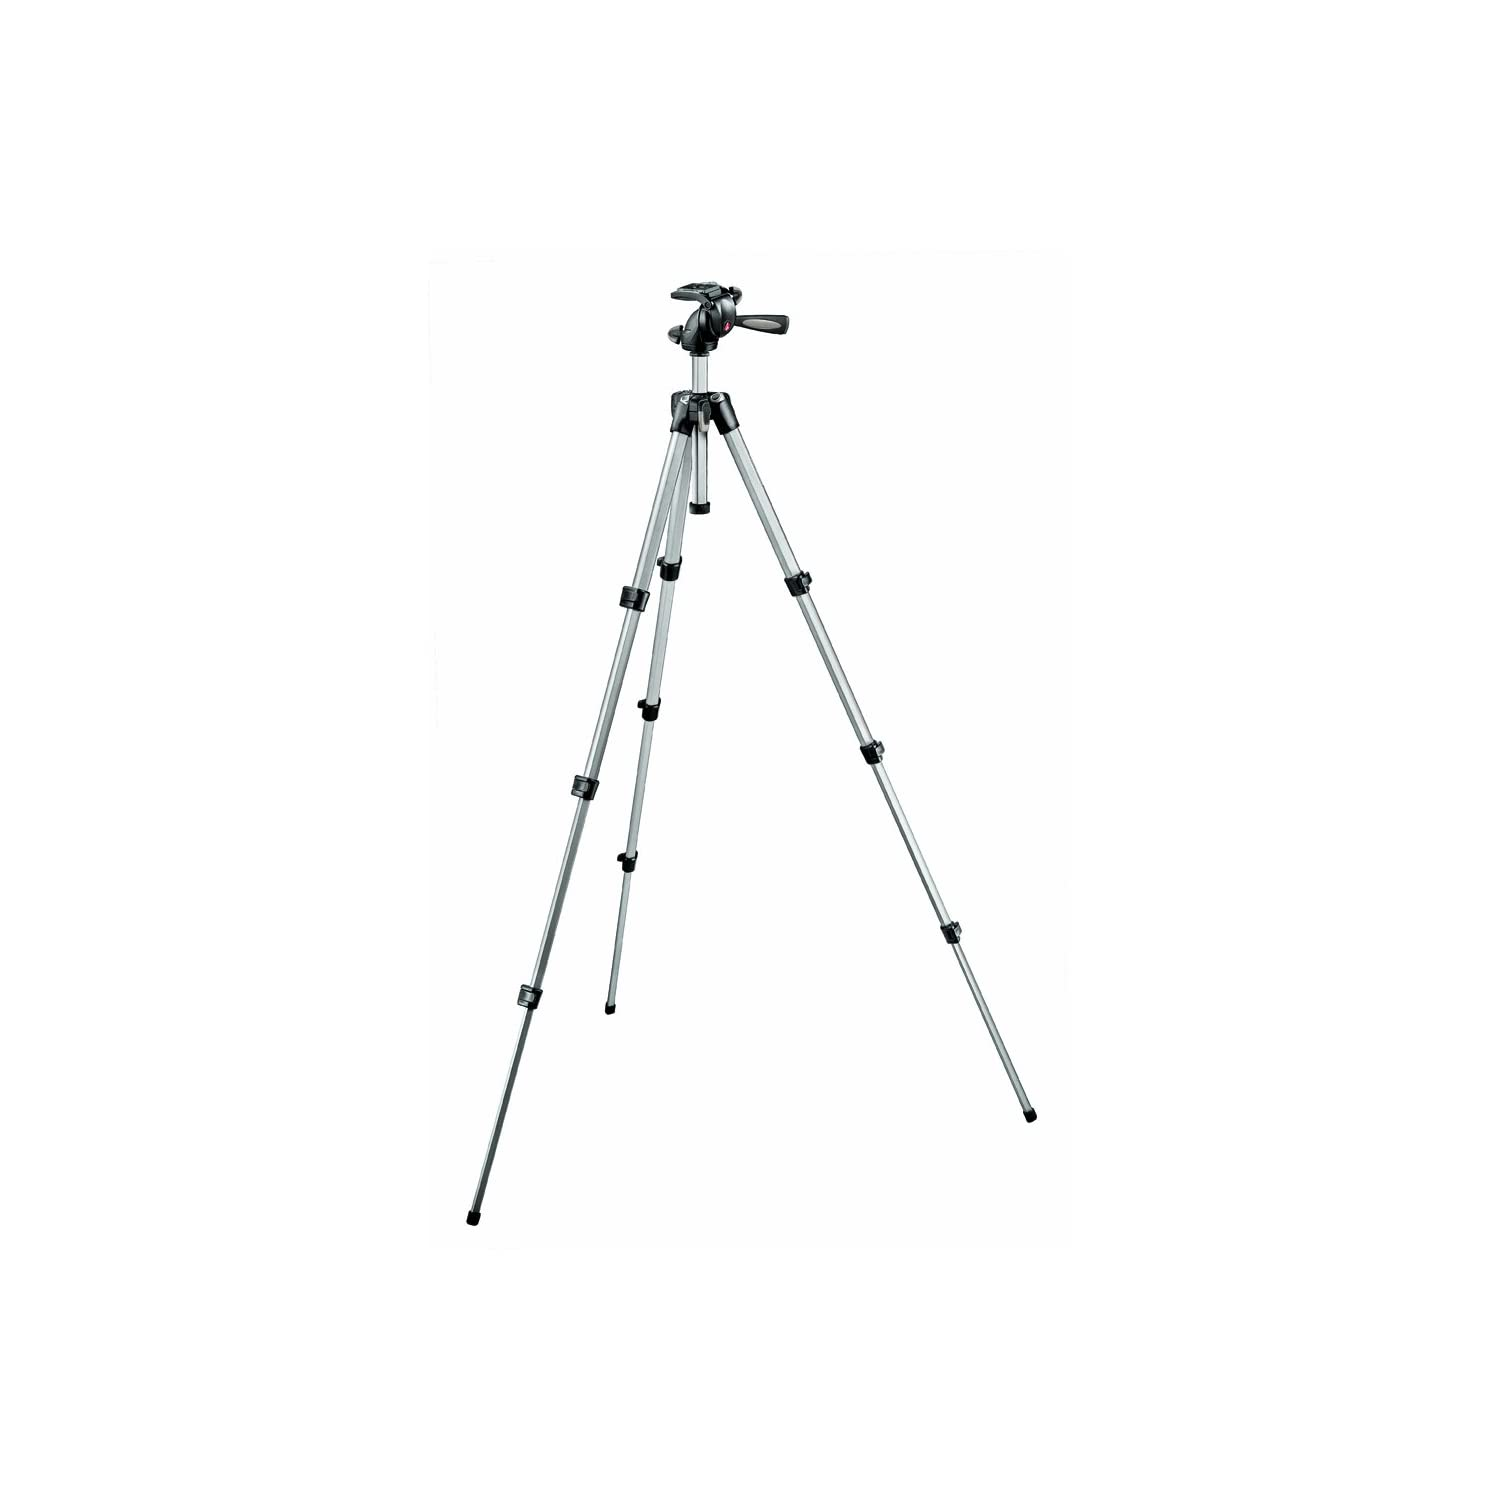 Manfrotto MK394-H trepied pour appareil photo sans rotule/t